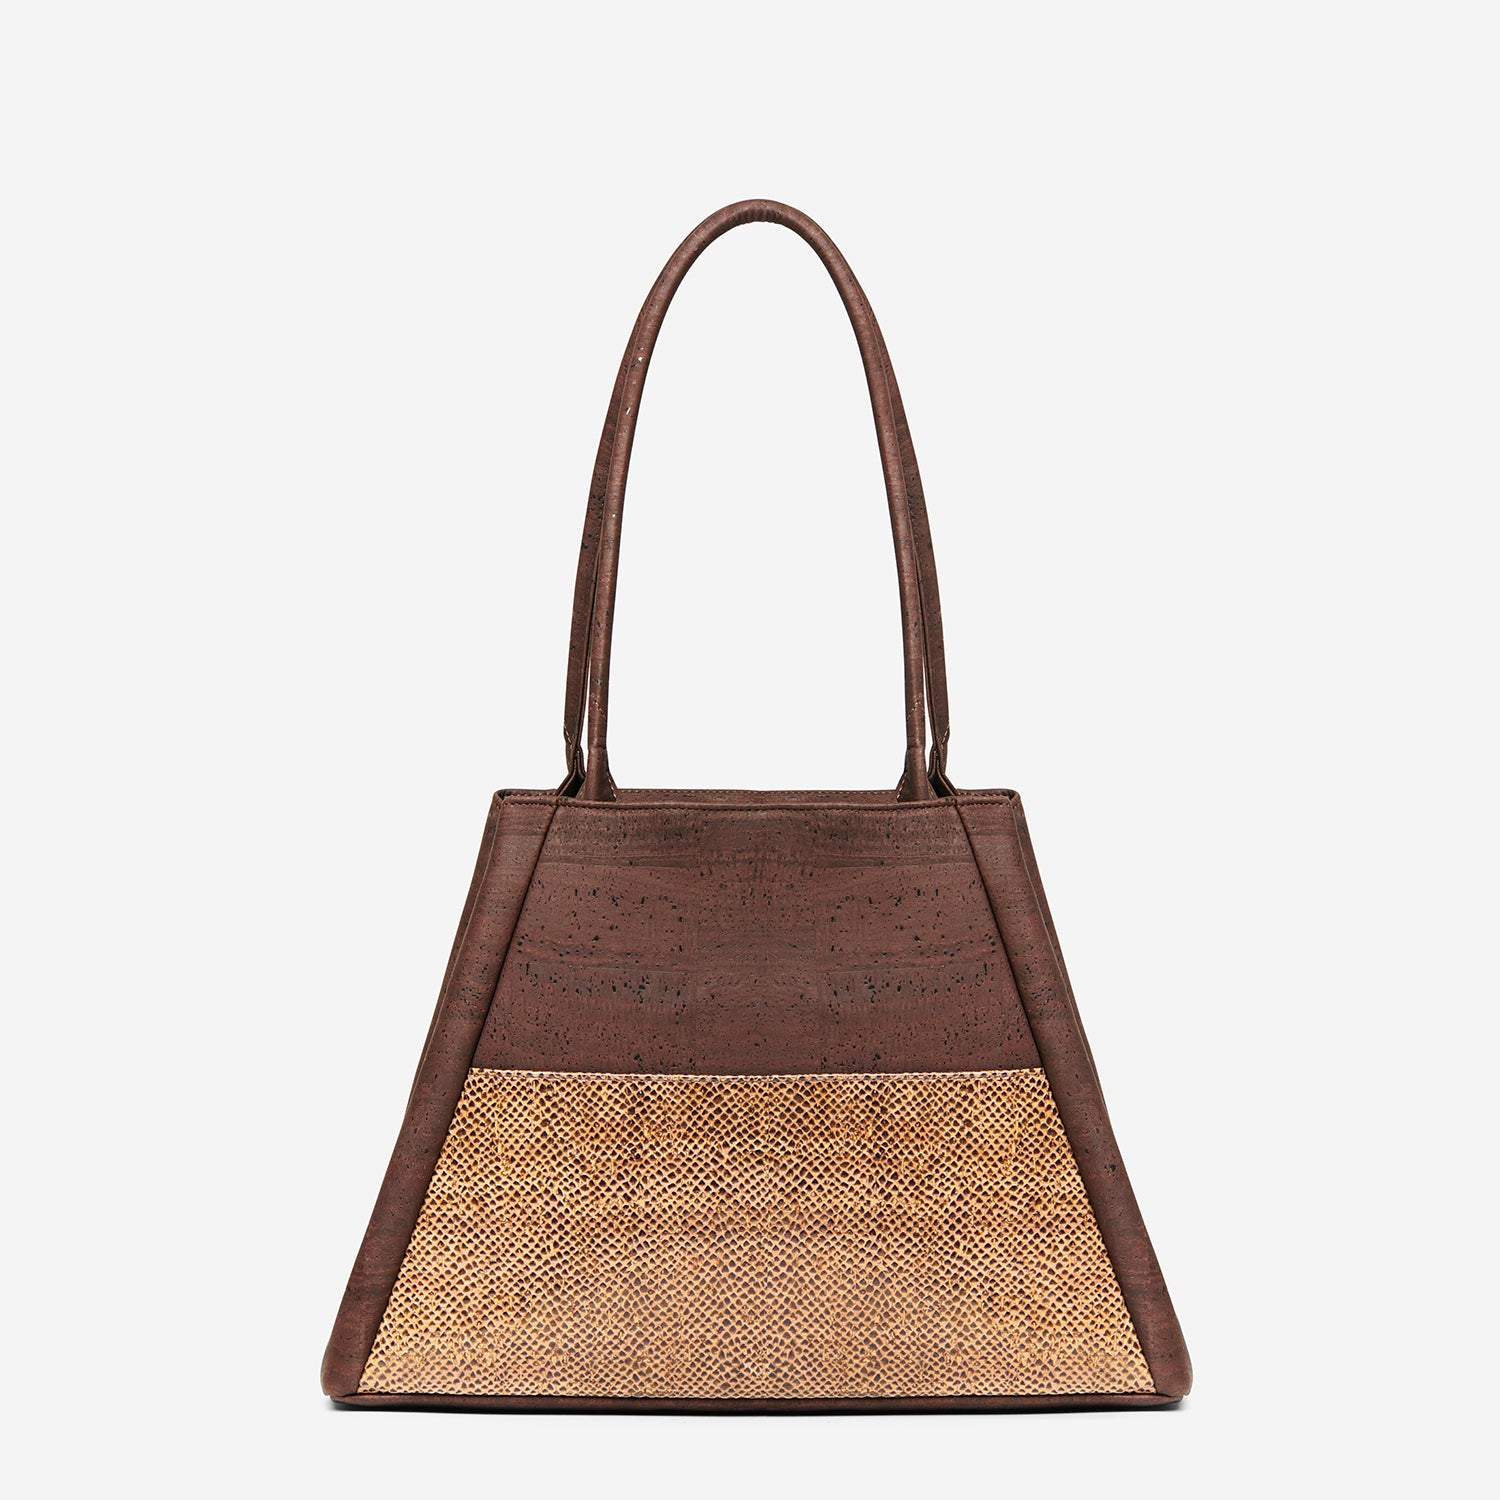 Yvonne - Cork Tote Bag - Paula Parisotto - Two Tone